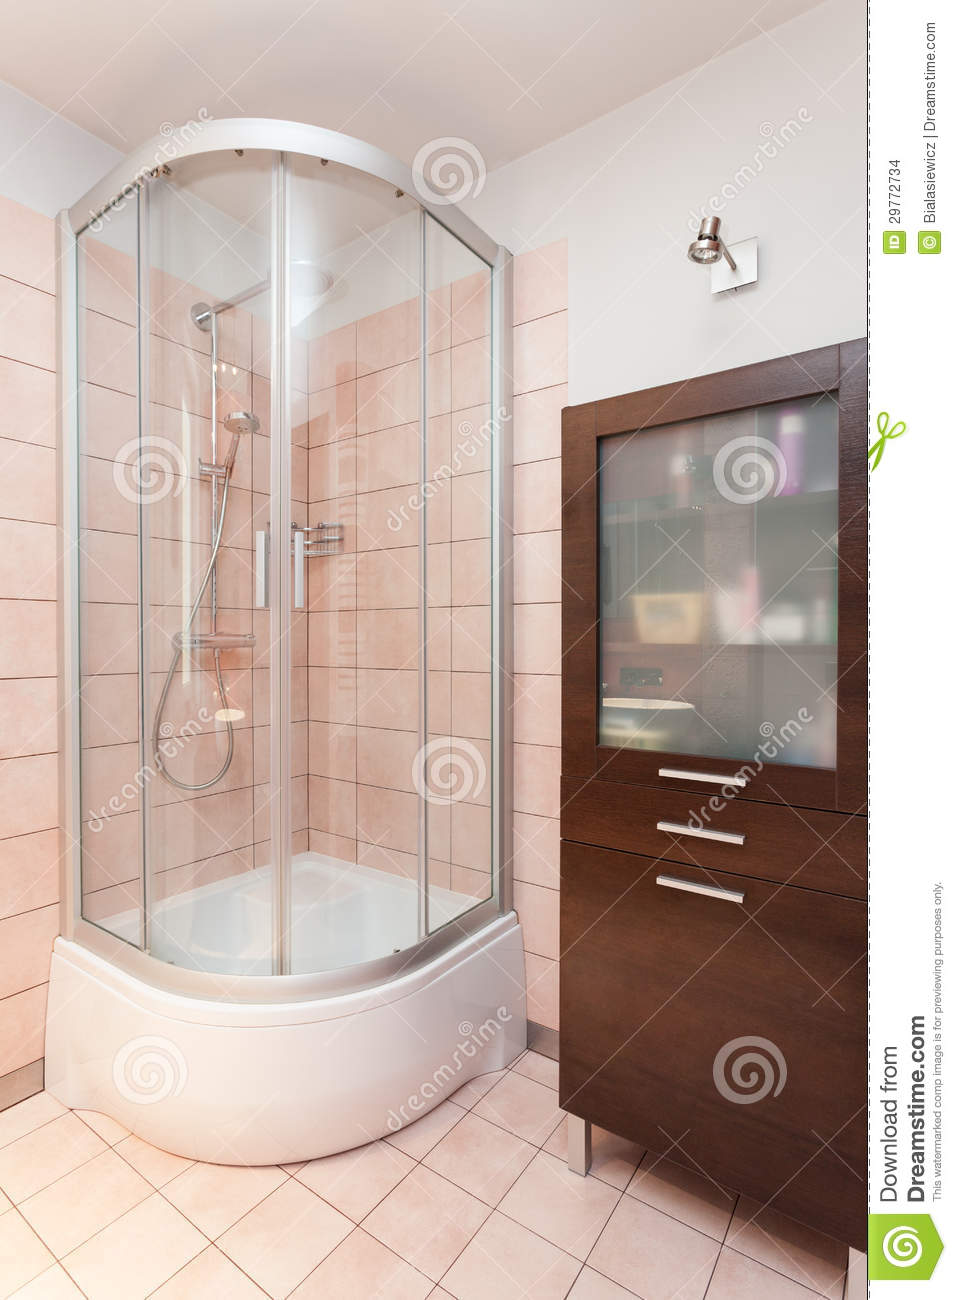 Appartement spacieux douche images stock image 29772734 for Bain douche en coin